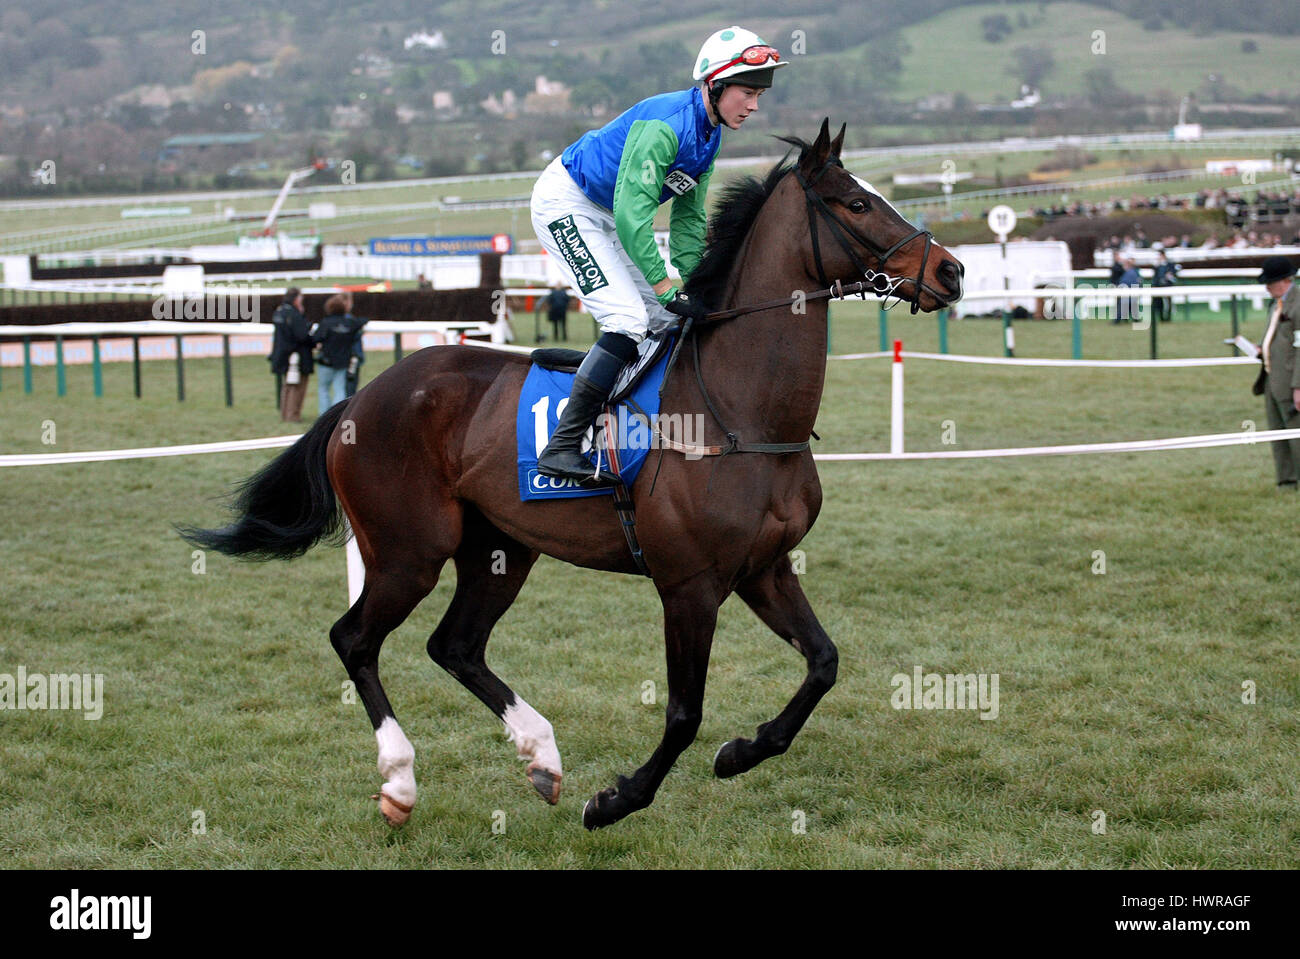 CONTRABAND RIDDEN BY JAMES DAVIS CHELTENHAM RACECOURSE CHELTENHAM ENGLAND 17 March 2004 - Stock Image